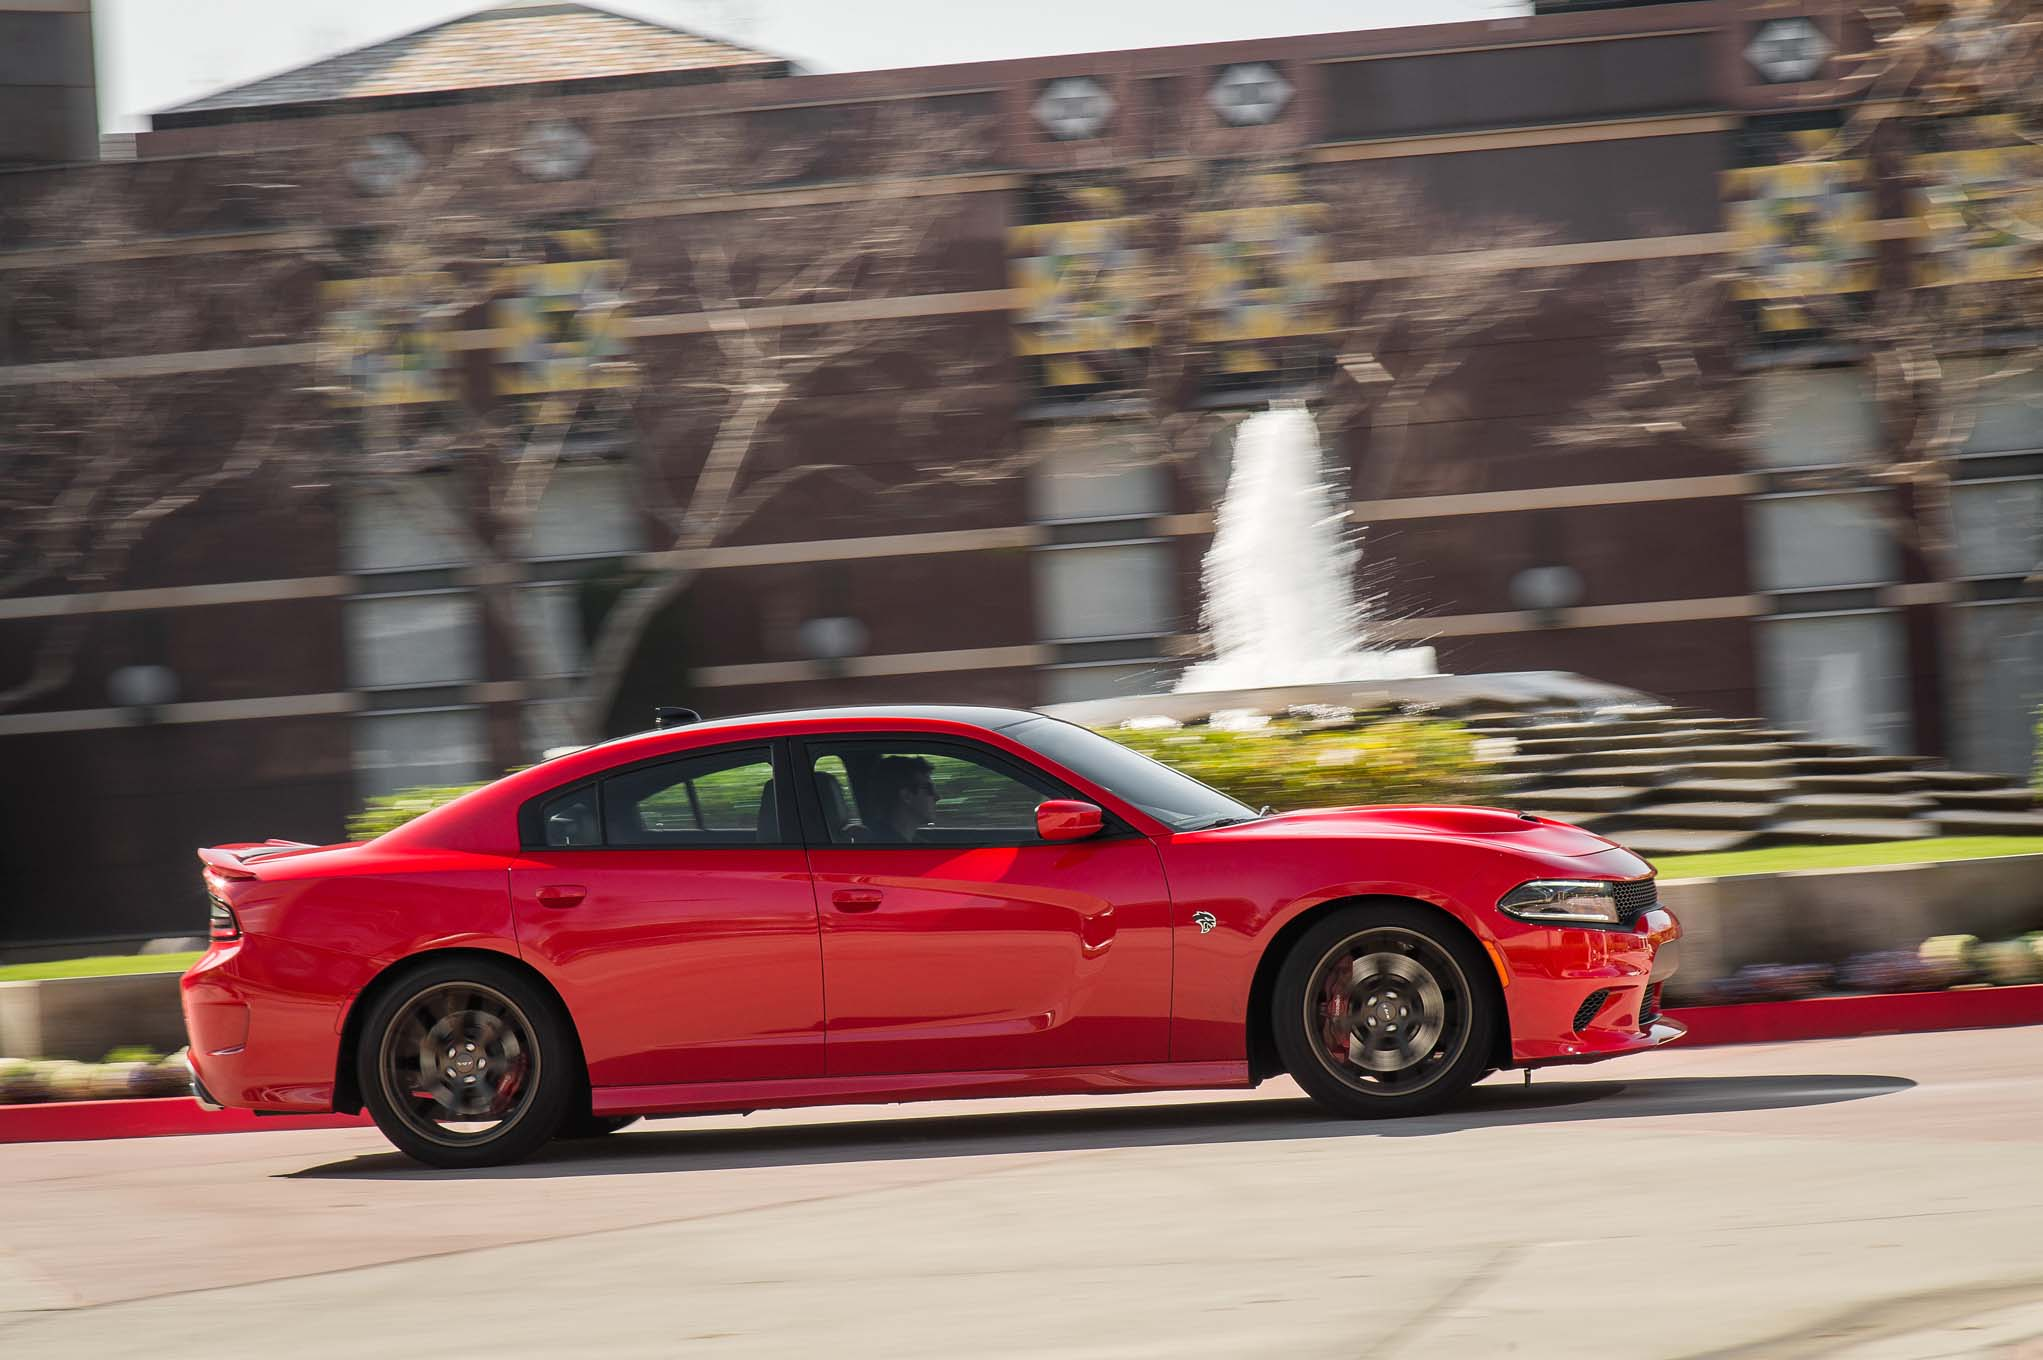 2019 Dodge Charger Srt Hellcat Receives New Grille Automobile Magazine